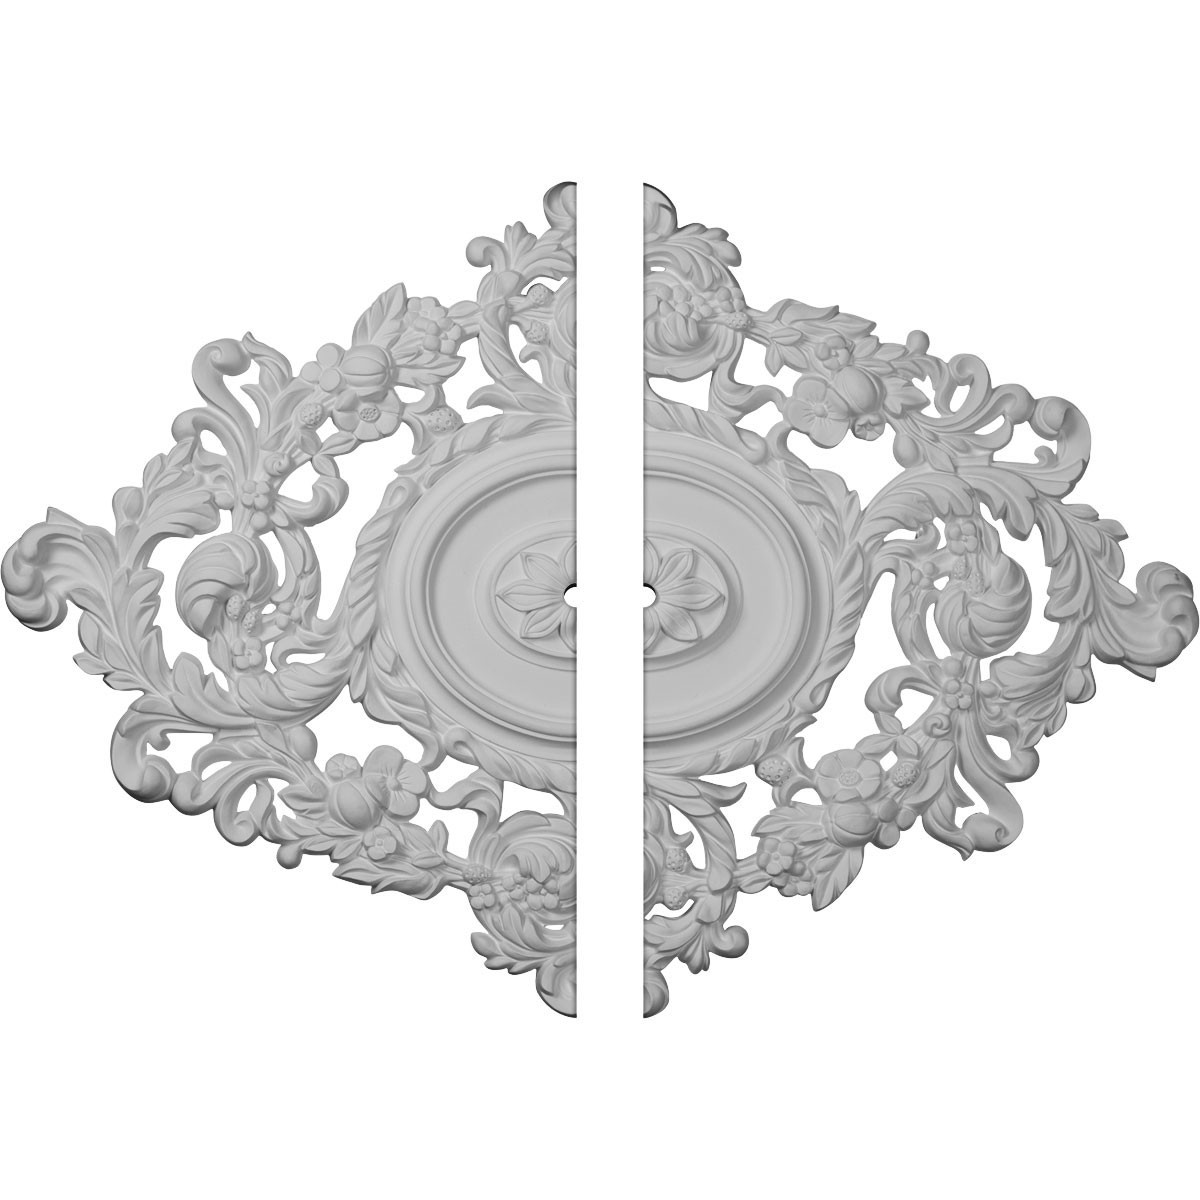 """EM-CM30KT2-01000 - 22 1/2""""W x 30 3/8""""H x 1""""ID x 1 1/2""""P Katheryn Ceiling Medallion, Two Piece (Fits Canopies up to 1"""")"""